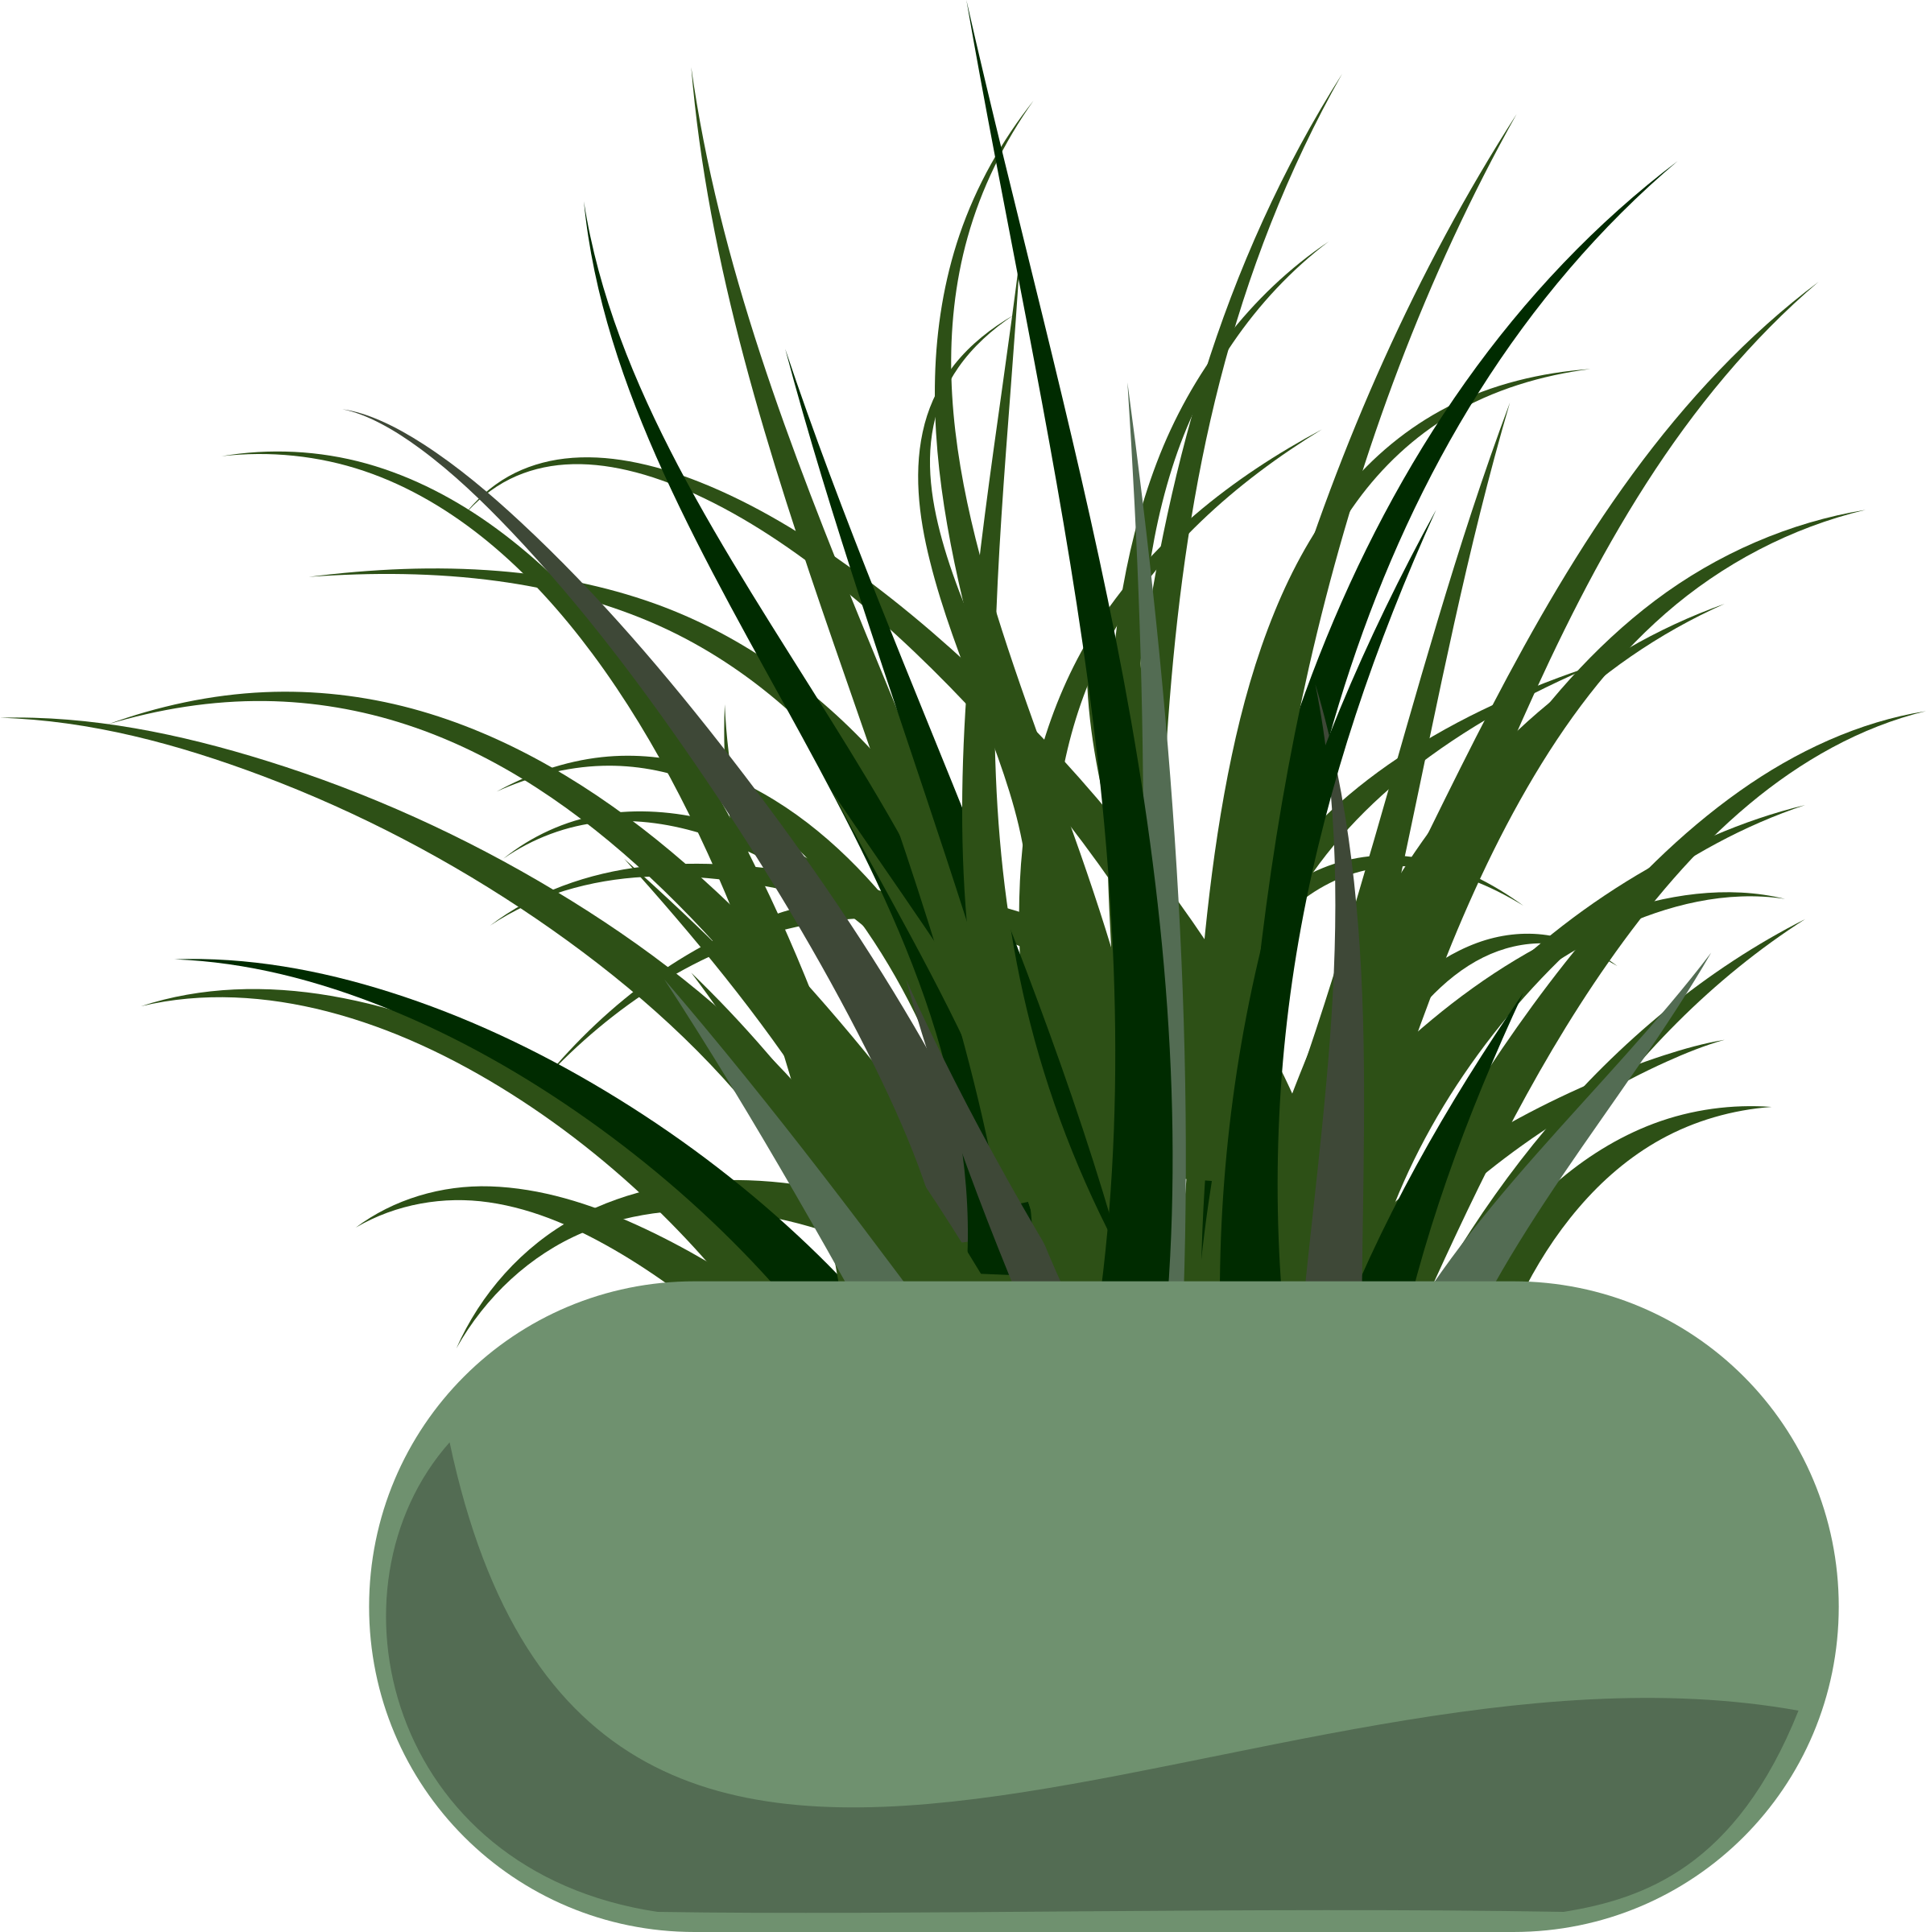 Potted Grass by stevepetmonkey